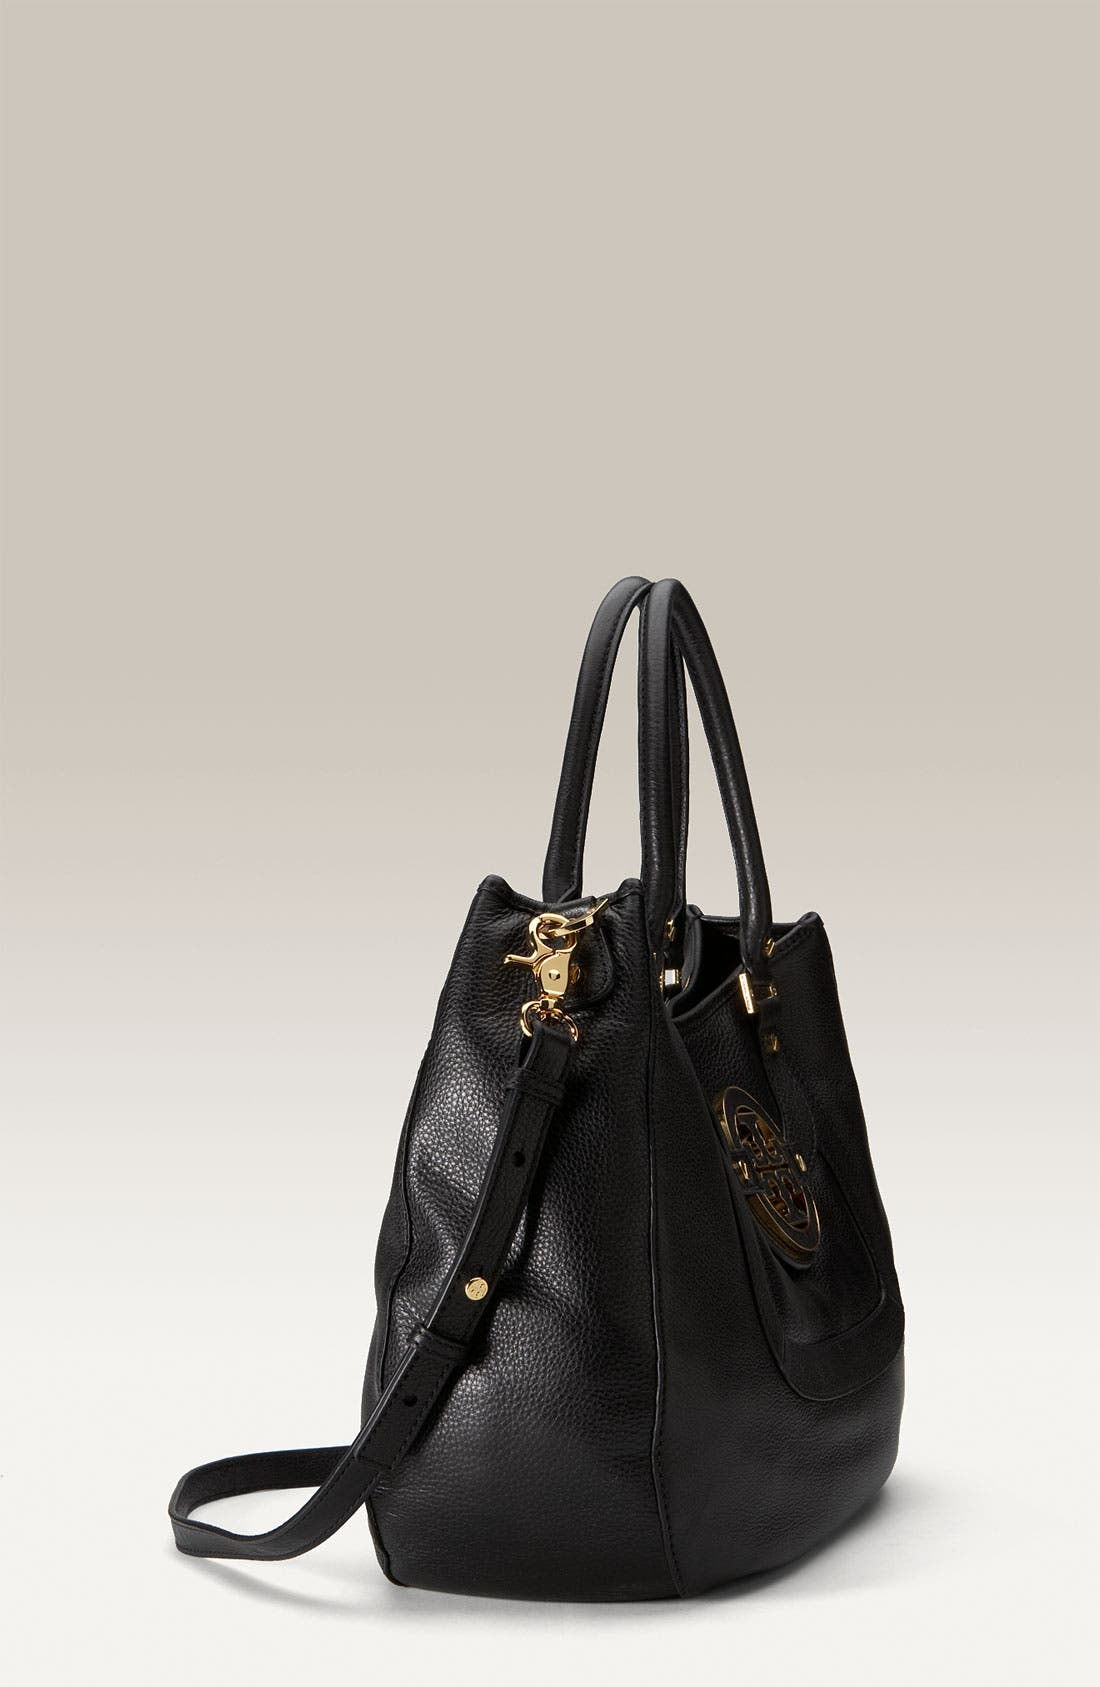 TORY BURCH, 'Amanda' Leather Hobo, Alternate thumbnail 2, color, 001